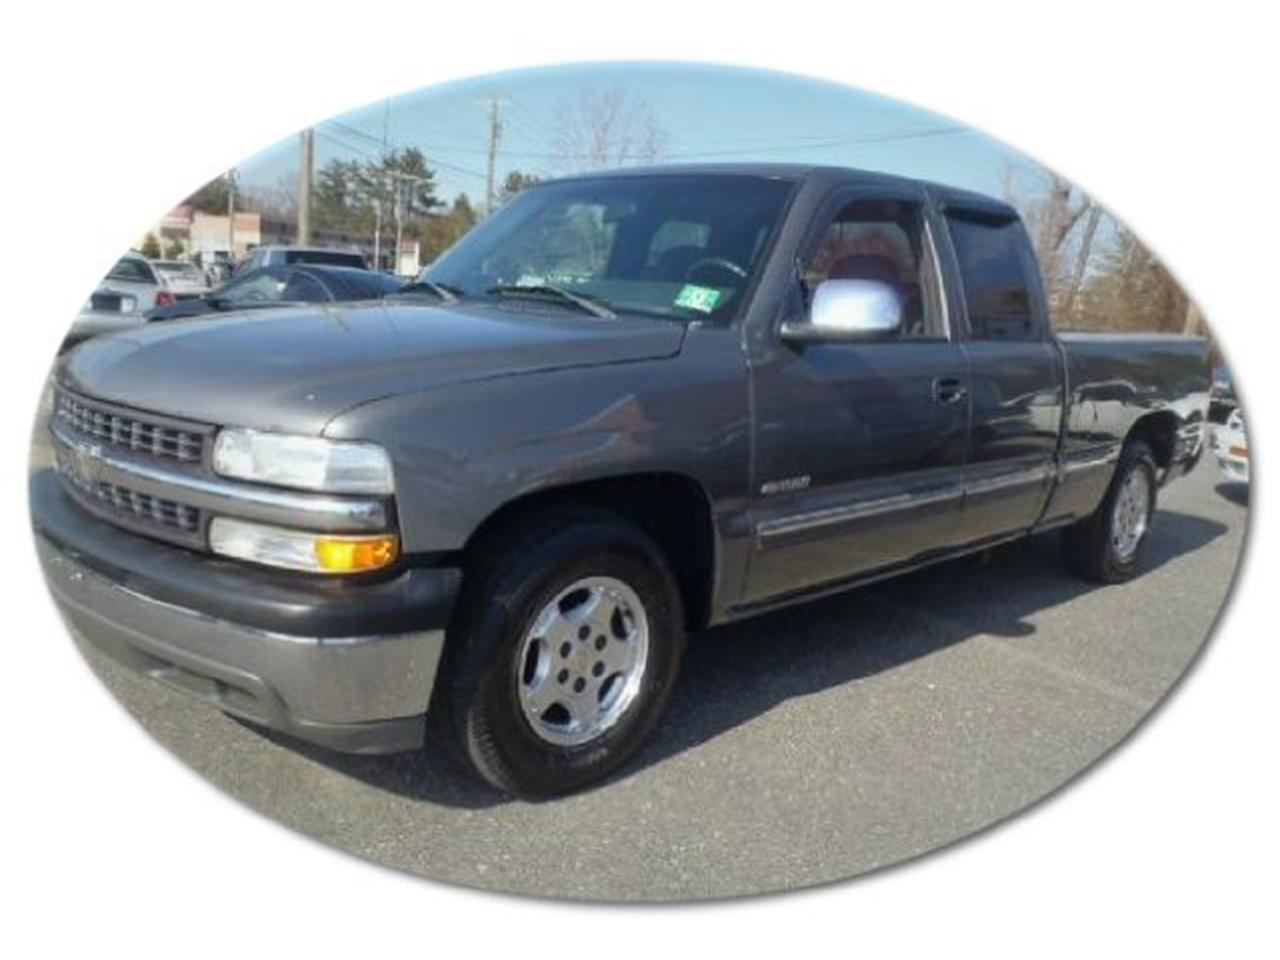 2002 Chevrolet Silverado (CC-1217657) for sale in Stratford, New Jersey